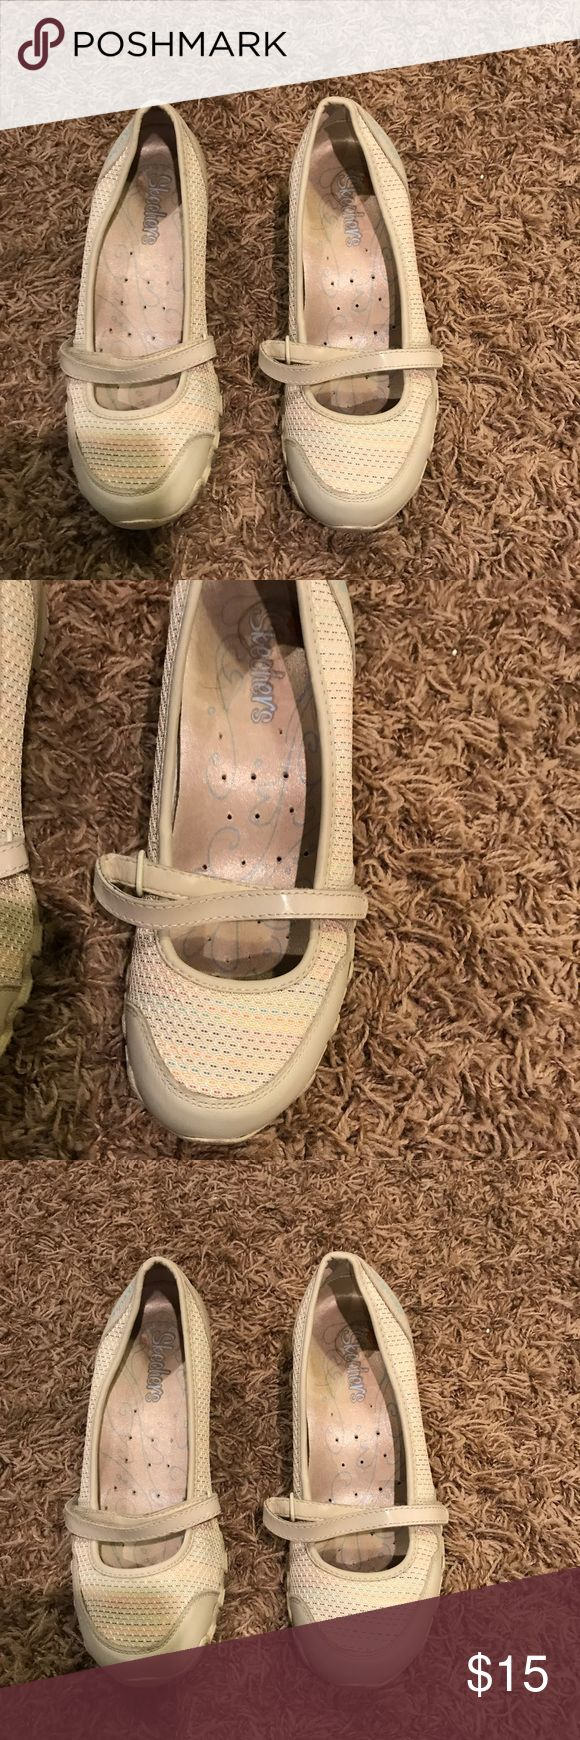 Skechers shoes sn21167 size 5.5 Skechers shoes SN21167 Size 5.5 Girls/women's Excellent preowned condition  Small wedge- 1.25 in Cream with a rainbow mesh Skechers Shoes Flats & Loafers